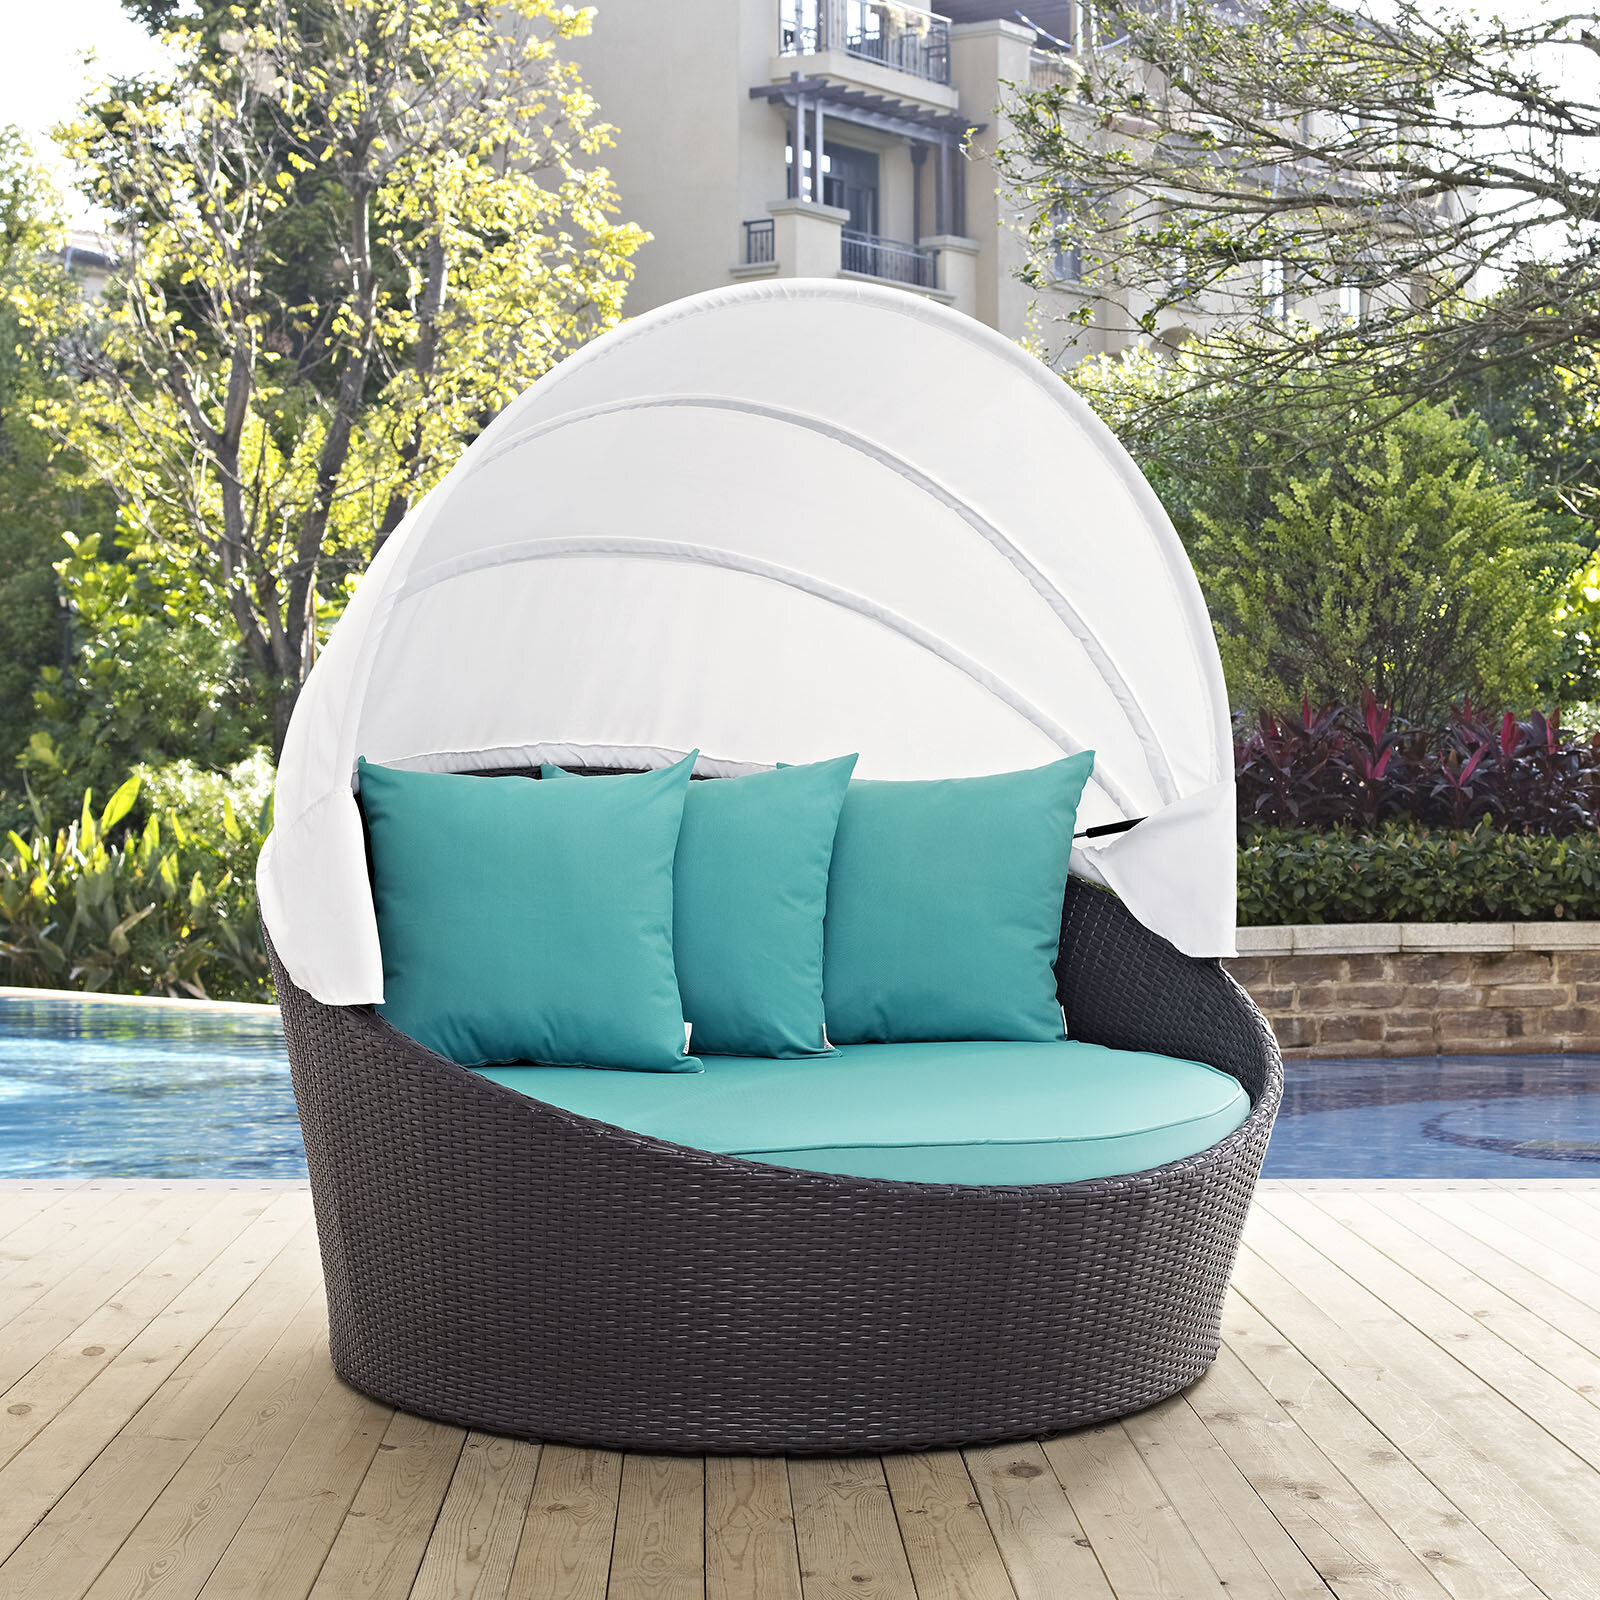 Laude Run Ryele Canopy Outdoor Patio Daybed with Cushions ... on entry canopy lighting, backyard pergola lighting, backyard gazebo lighting, patio canopy lighting,